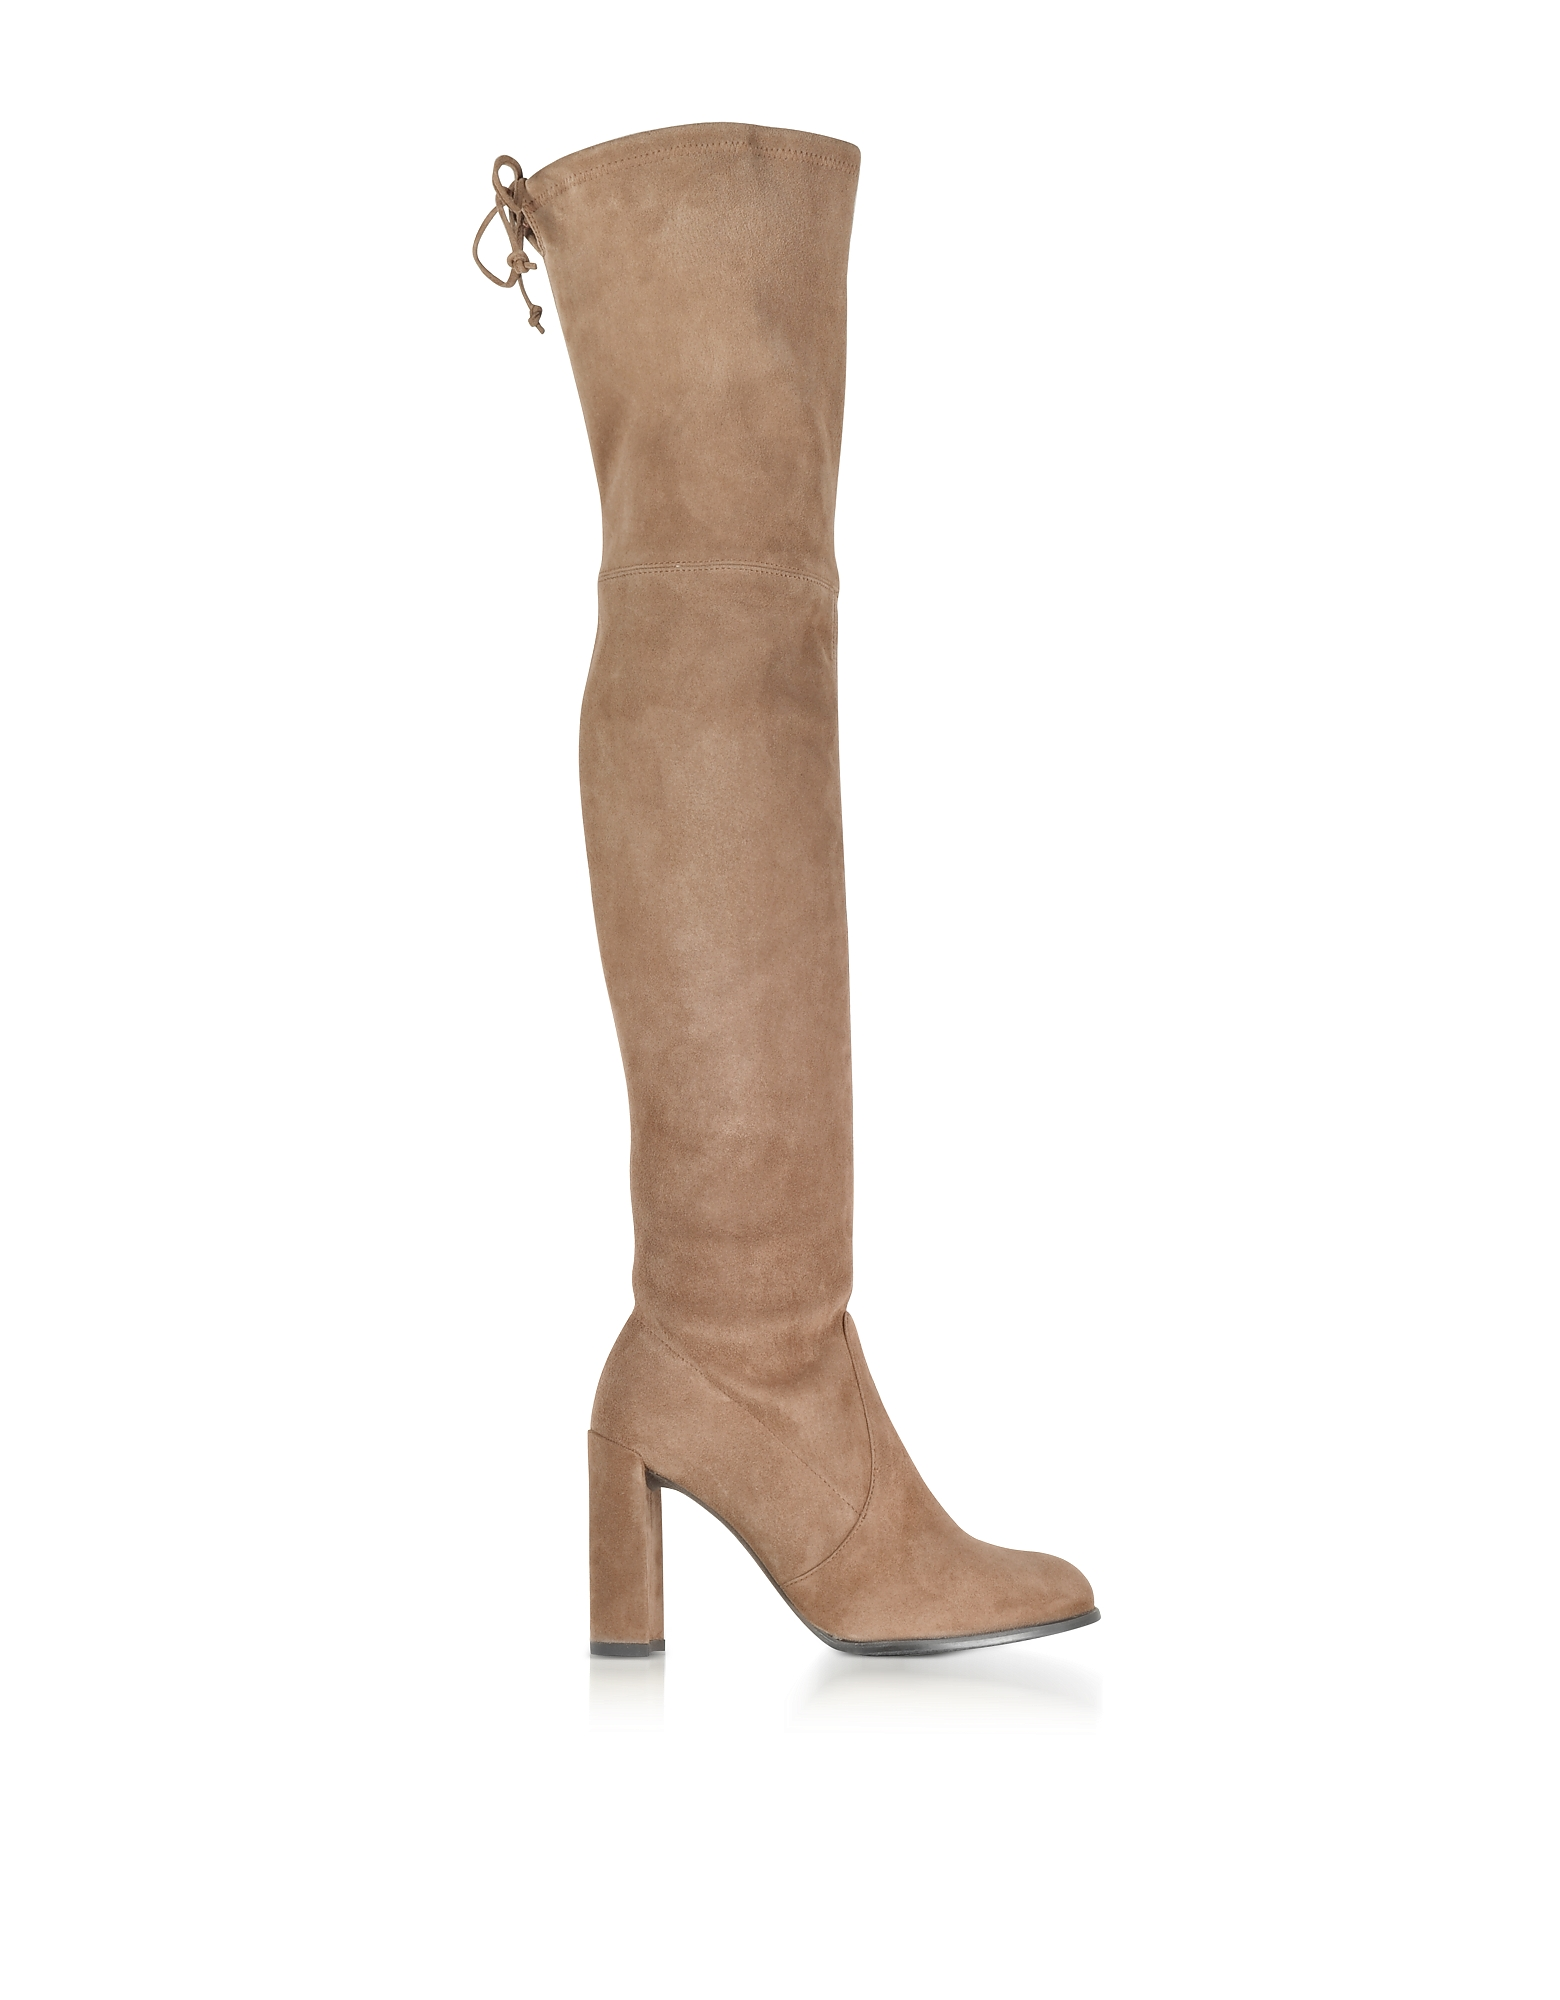 Stuart Weitzman Hiline Nutmeg Suede Heel Over The Knee Boots